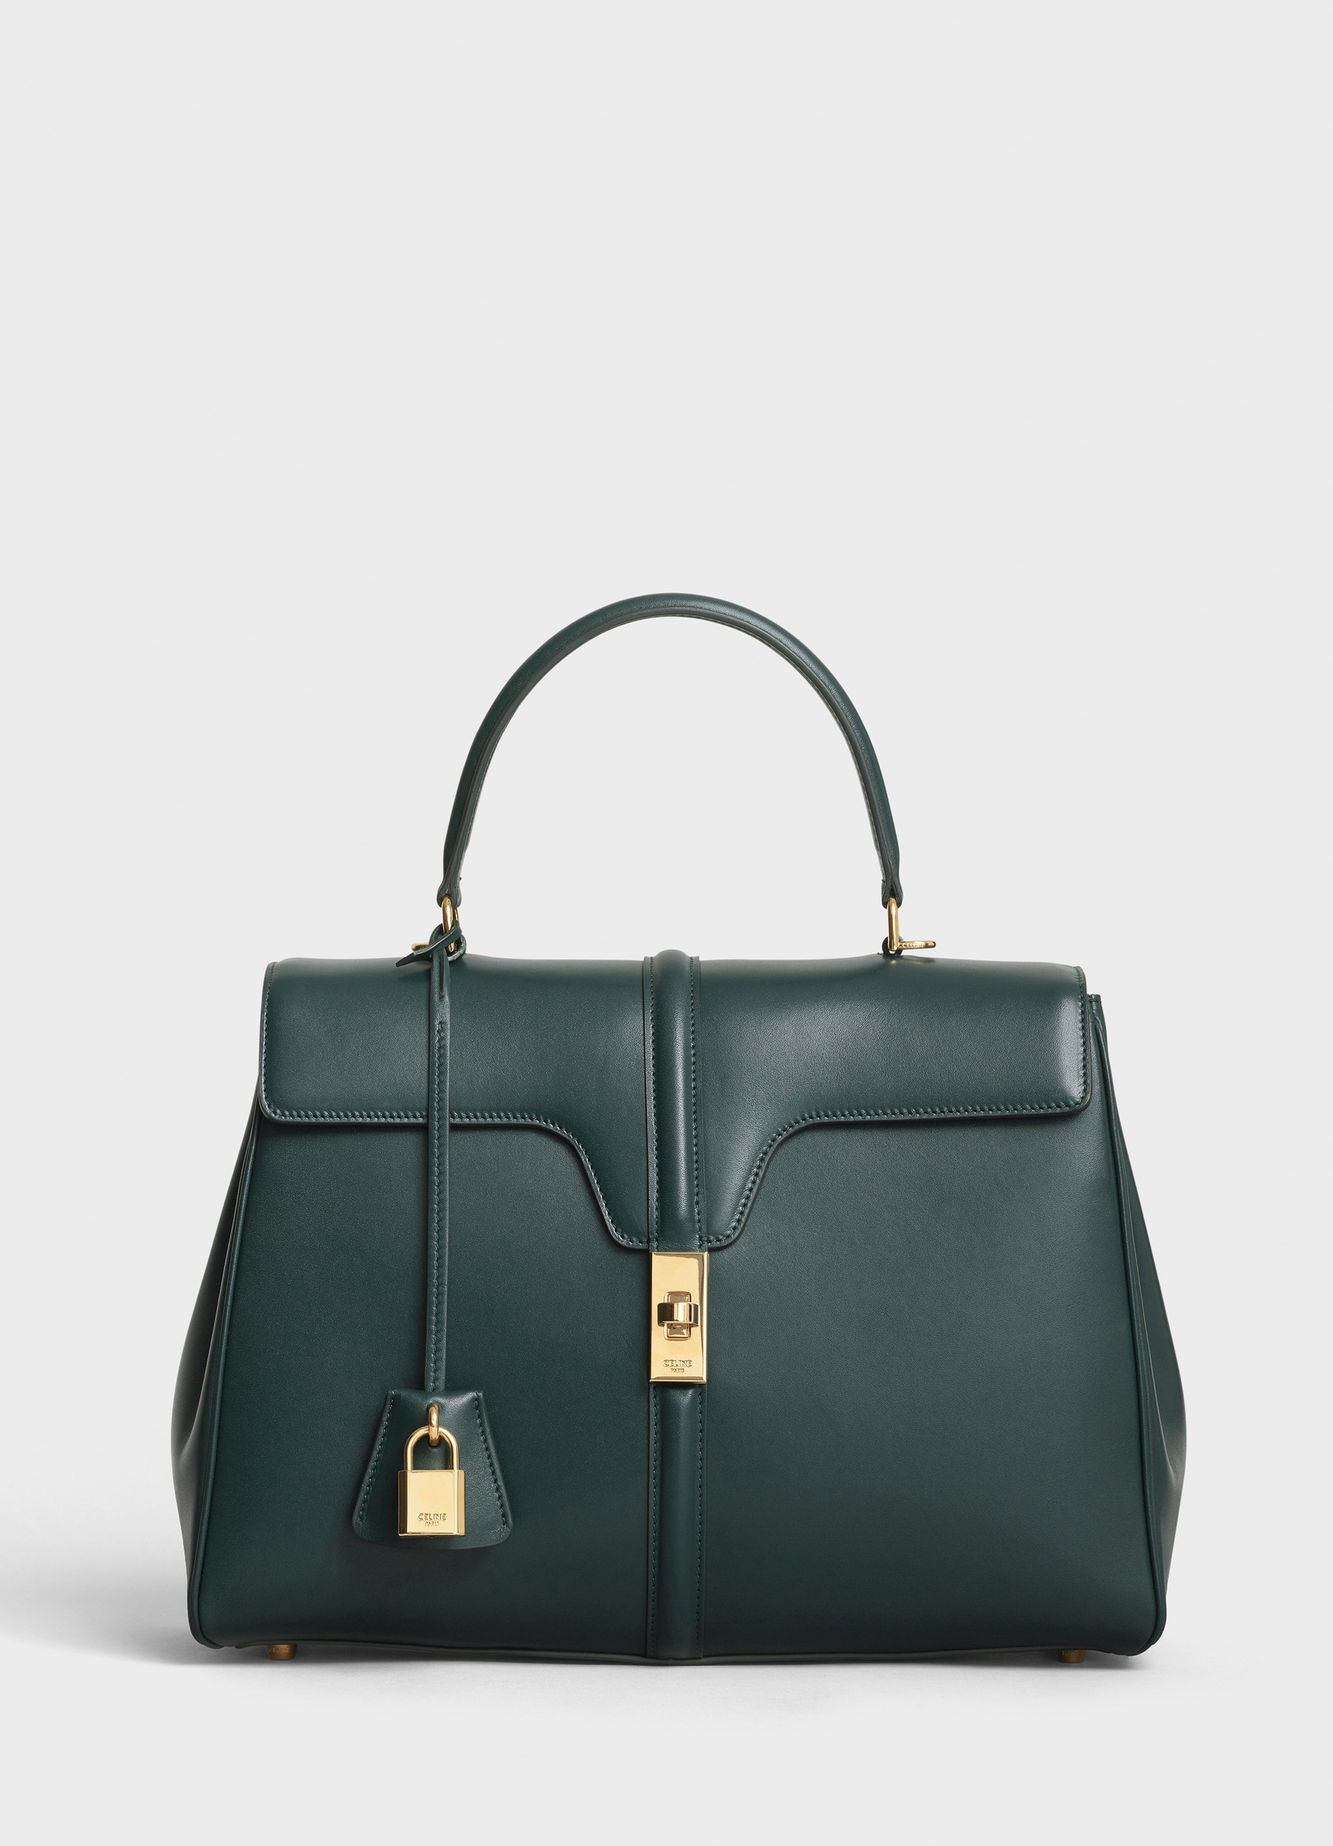 CELINE MEDIUM 16 BAG IN SATINATED CALFSKIN 187373 AMAZONE